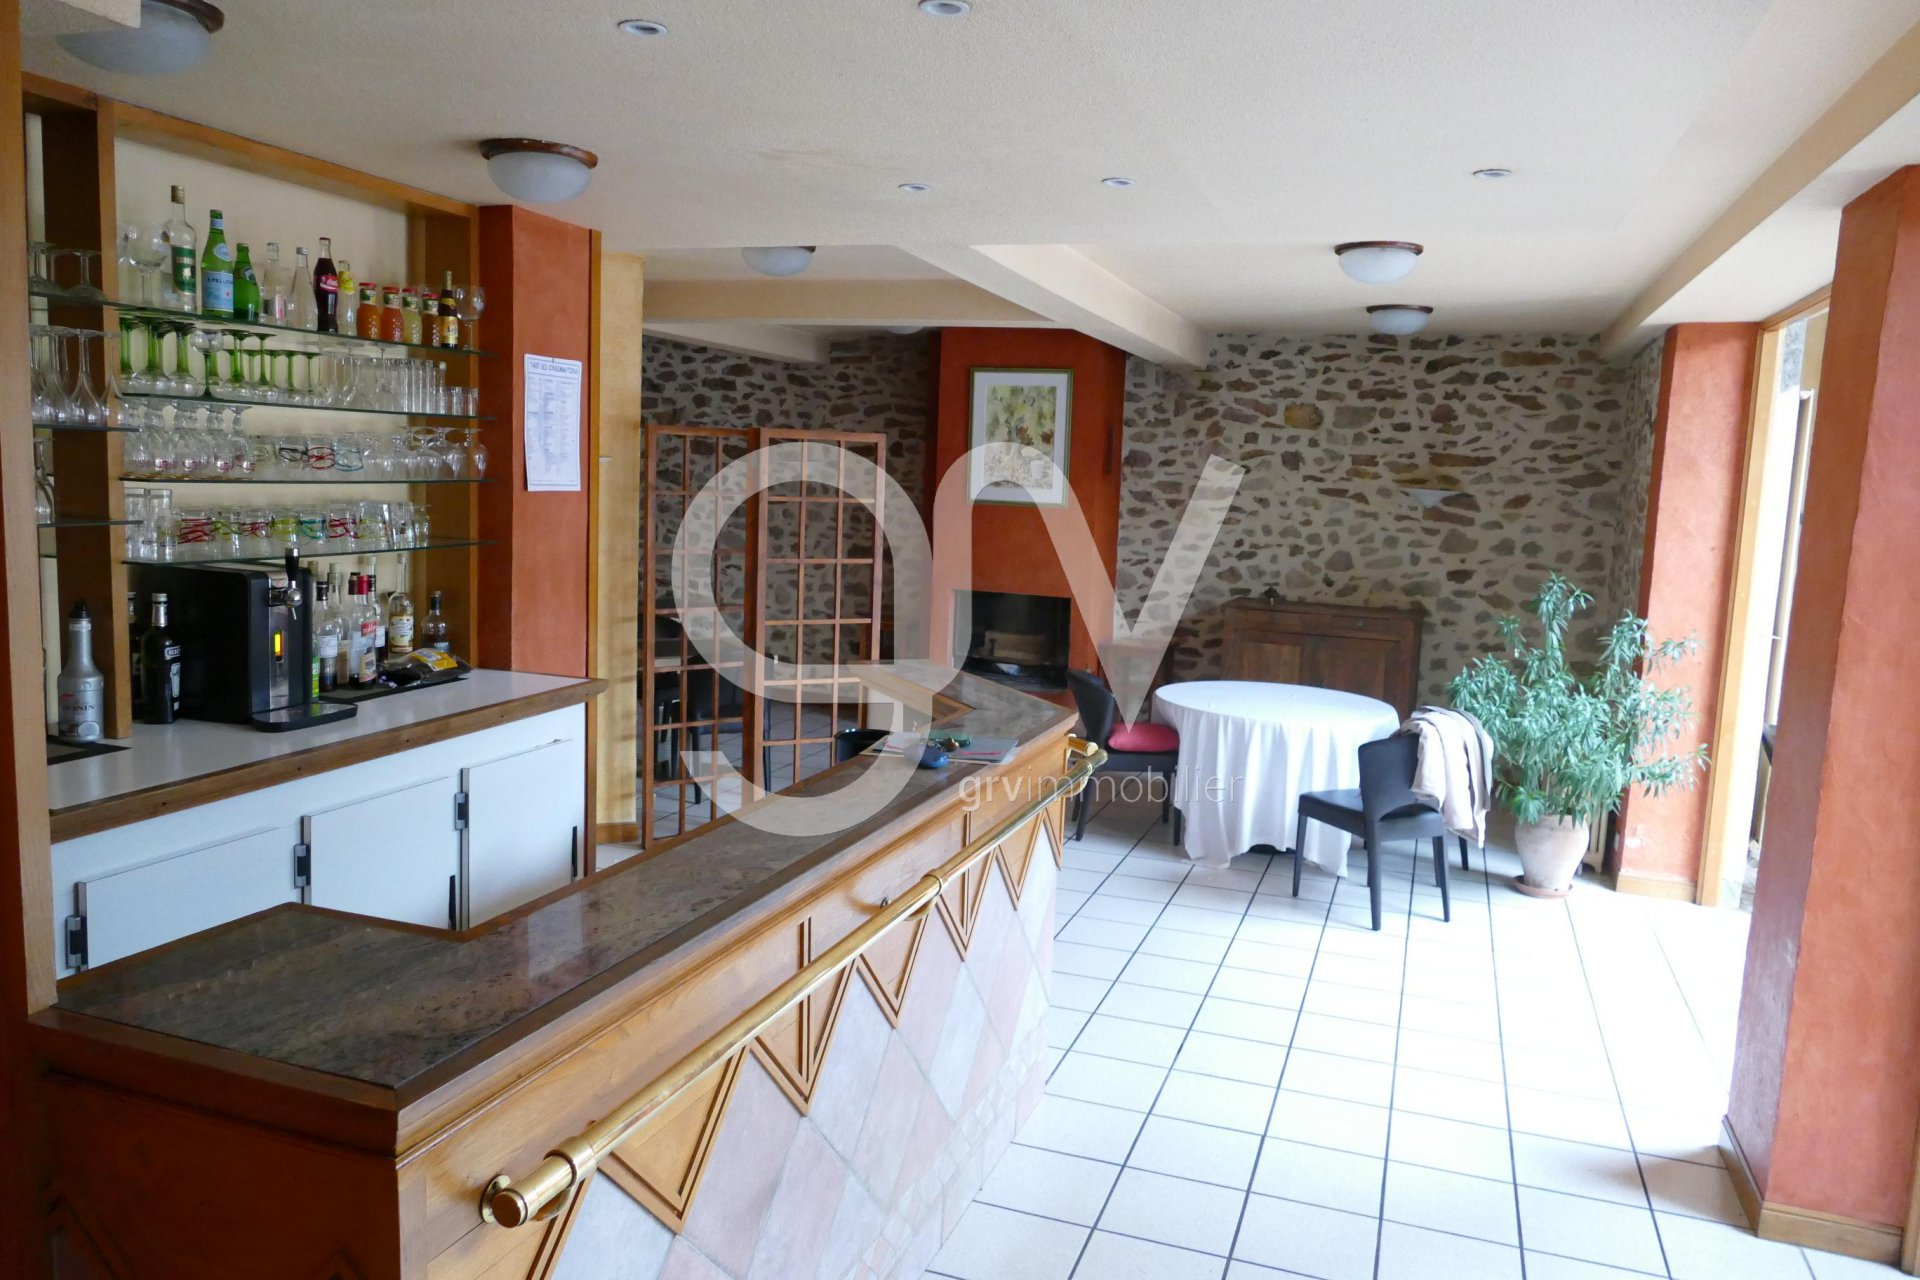 Guest house and restaurant in a typical village in South Cantal